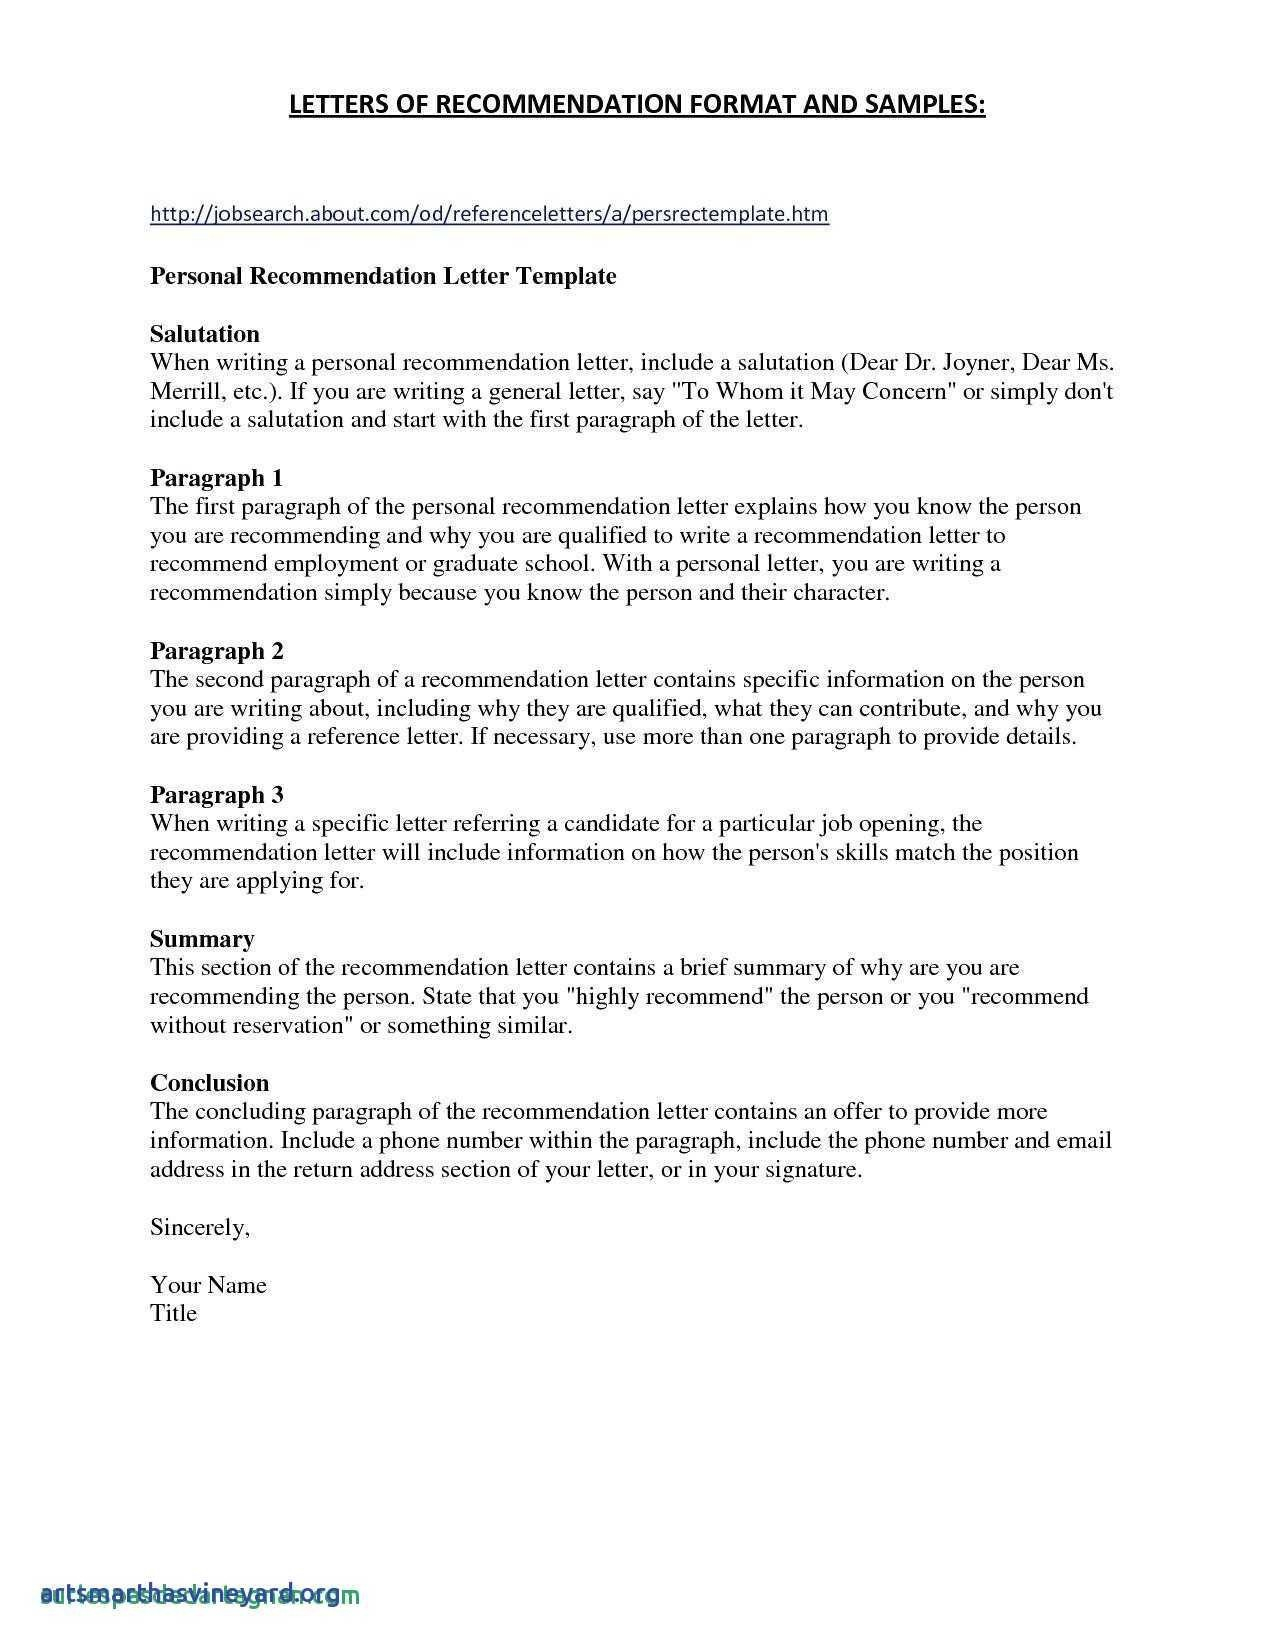 template for letter of recommendation for graduate school example-Re mendation Letter Sample For Graduate School From Friend New Re Mendation Letter For Scholarship From Employer Unique Fresh 19-s